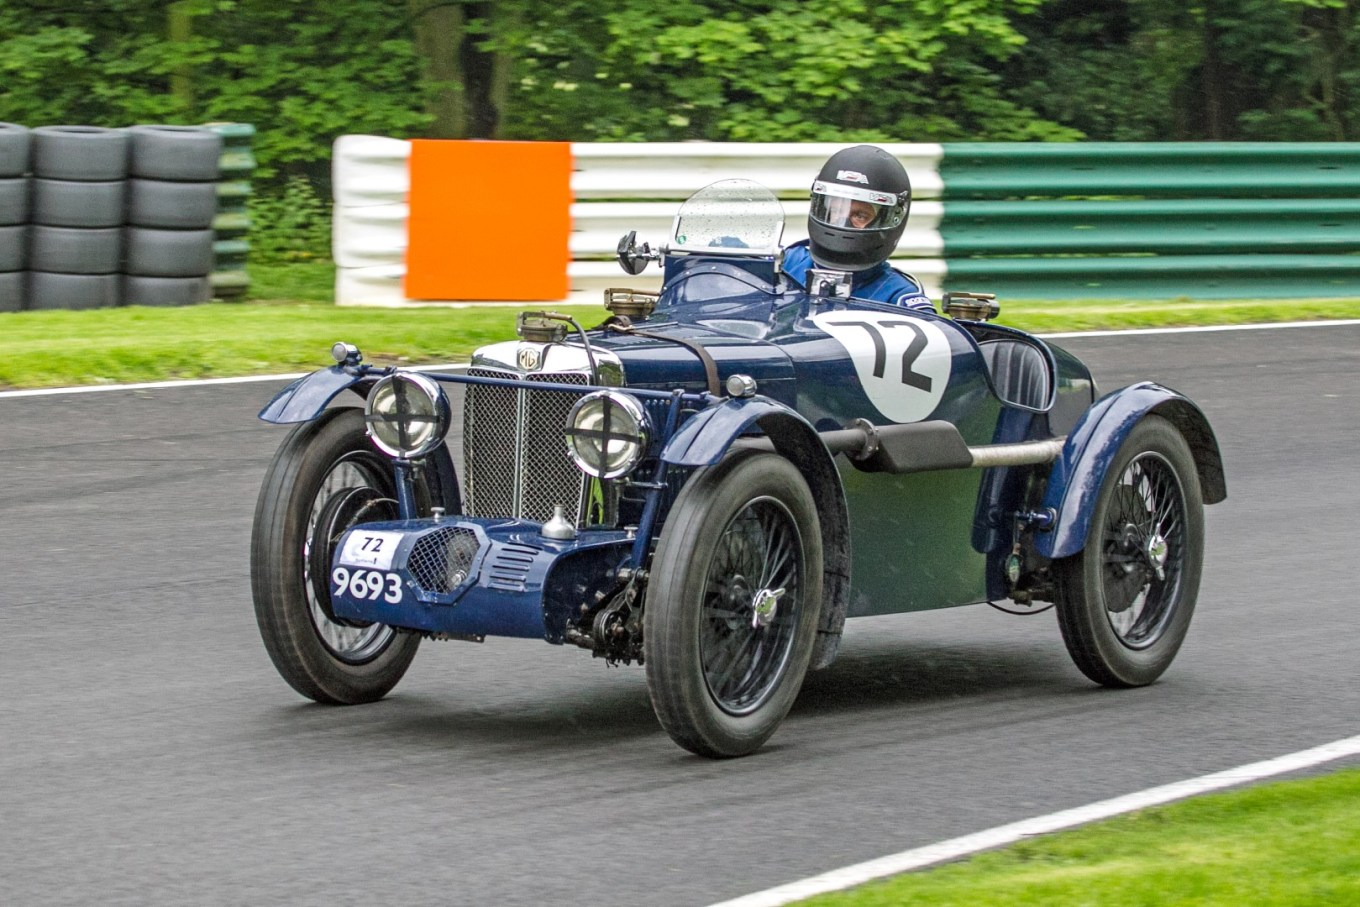 Duncan Potter, 746cc Supercharged MG, C Type